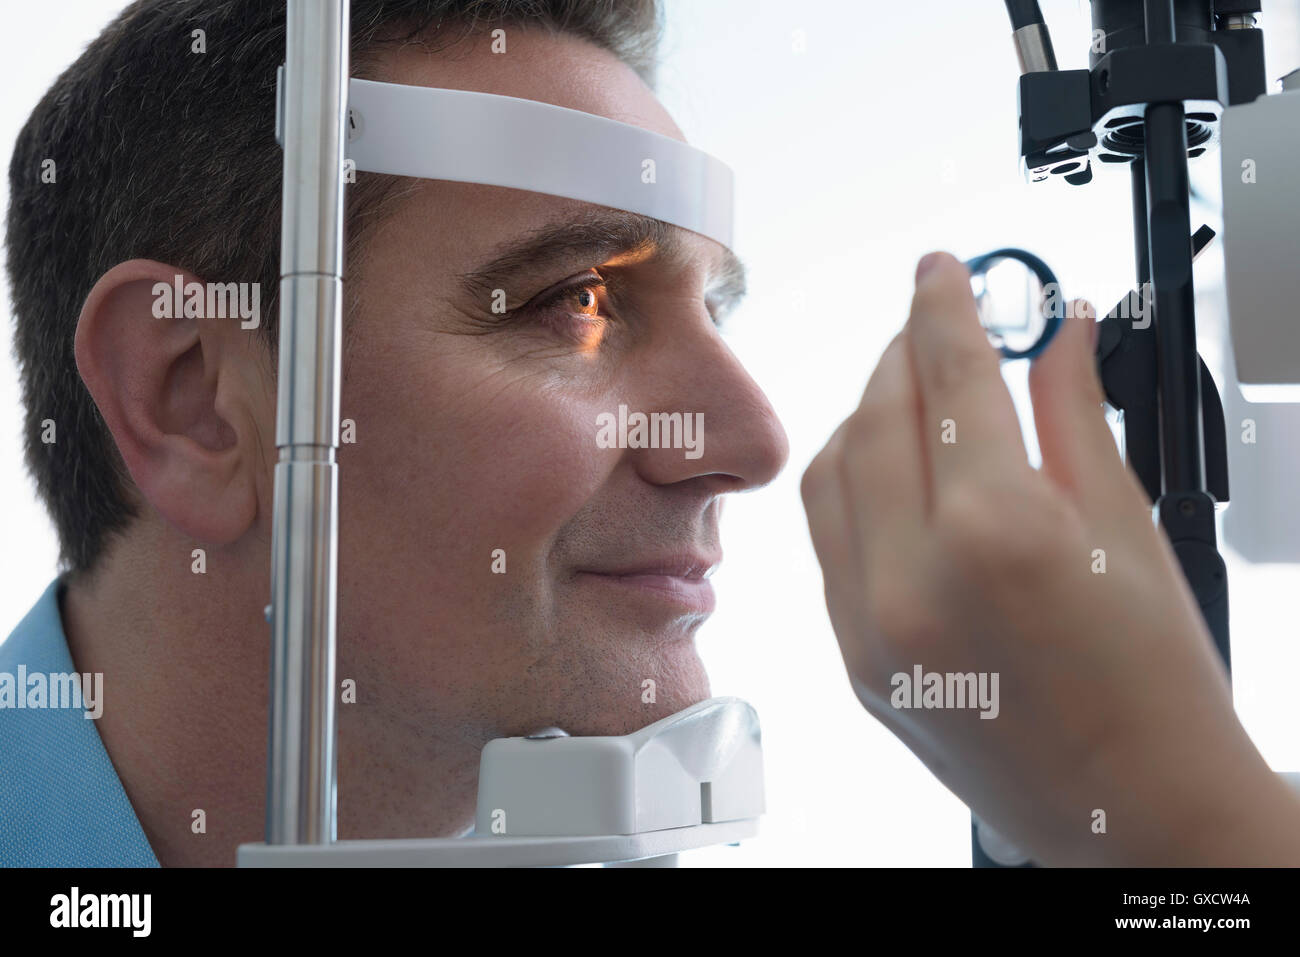 Optician looking into patient's eyes at small business opticians - Stock Image